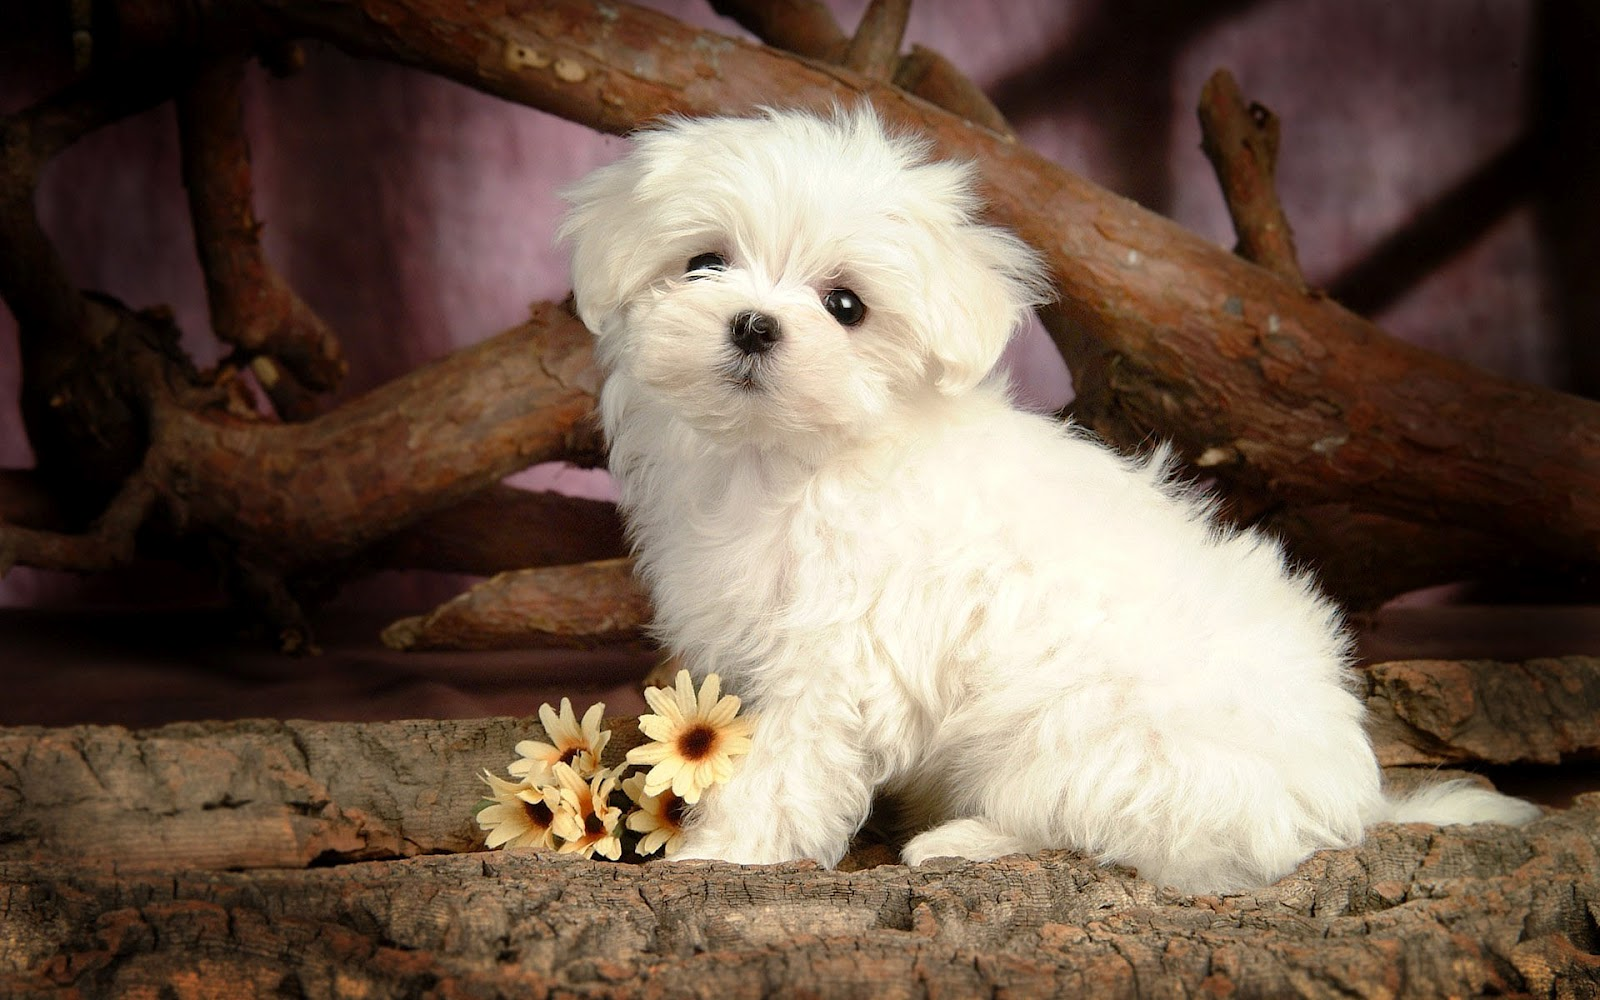 HD animal wallpaper with a cute little maltese dog wallpaper HD dogs 1600x1000